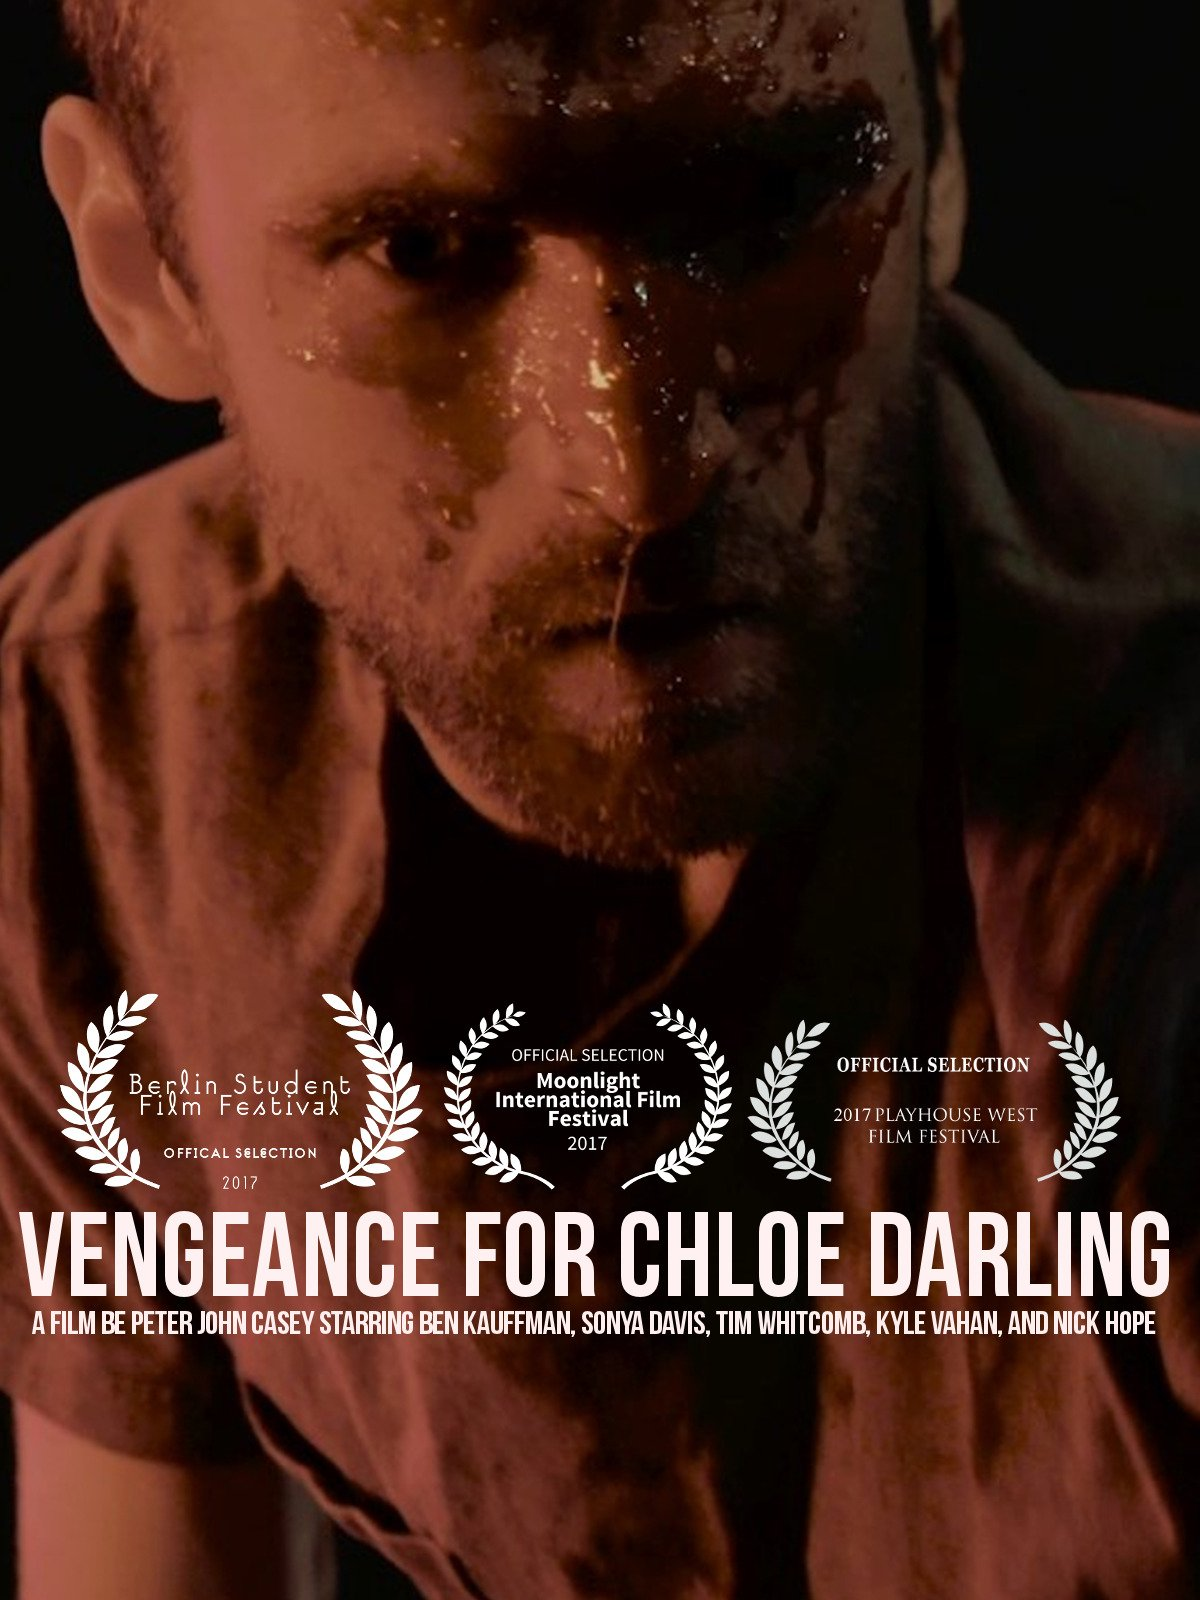 Vengeance for Chloe Darling